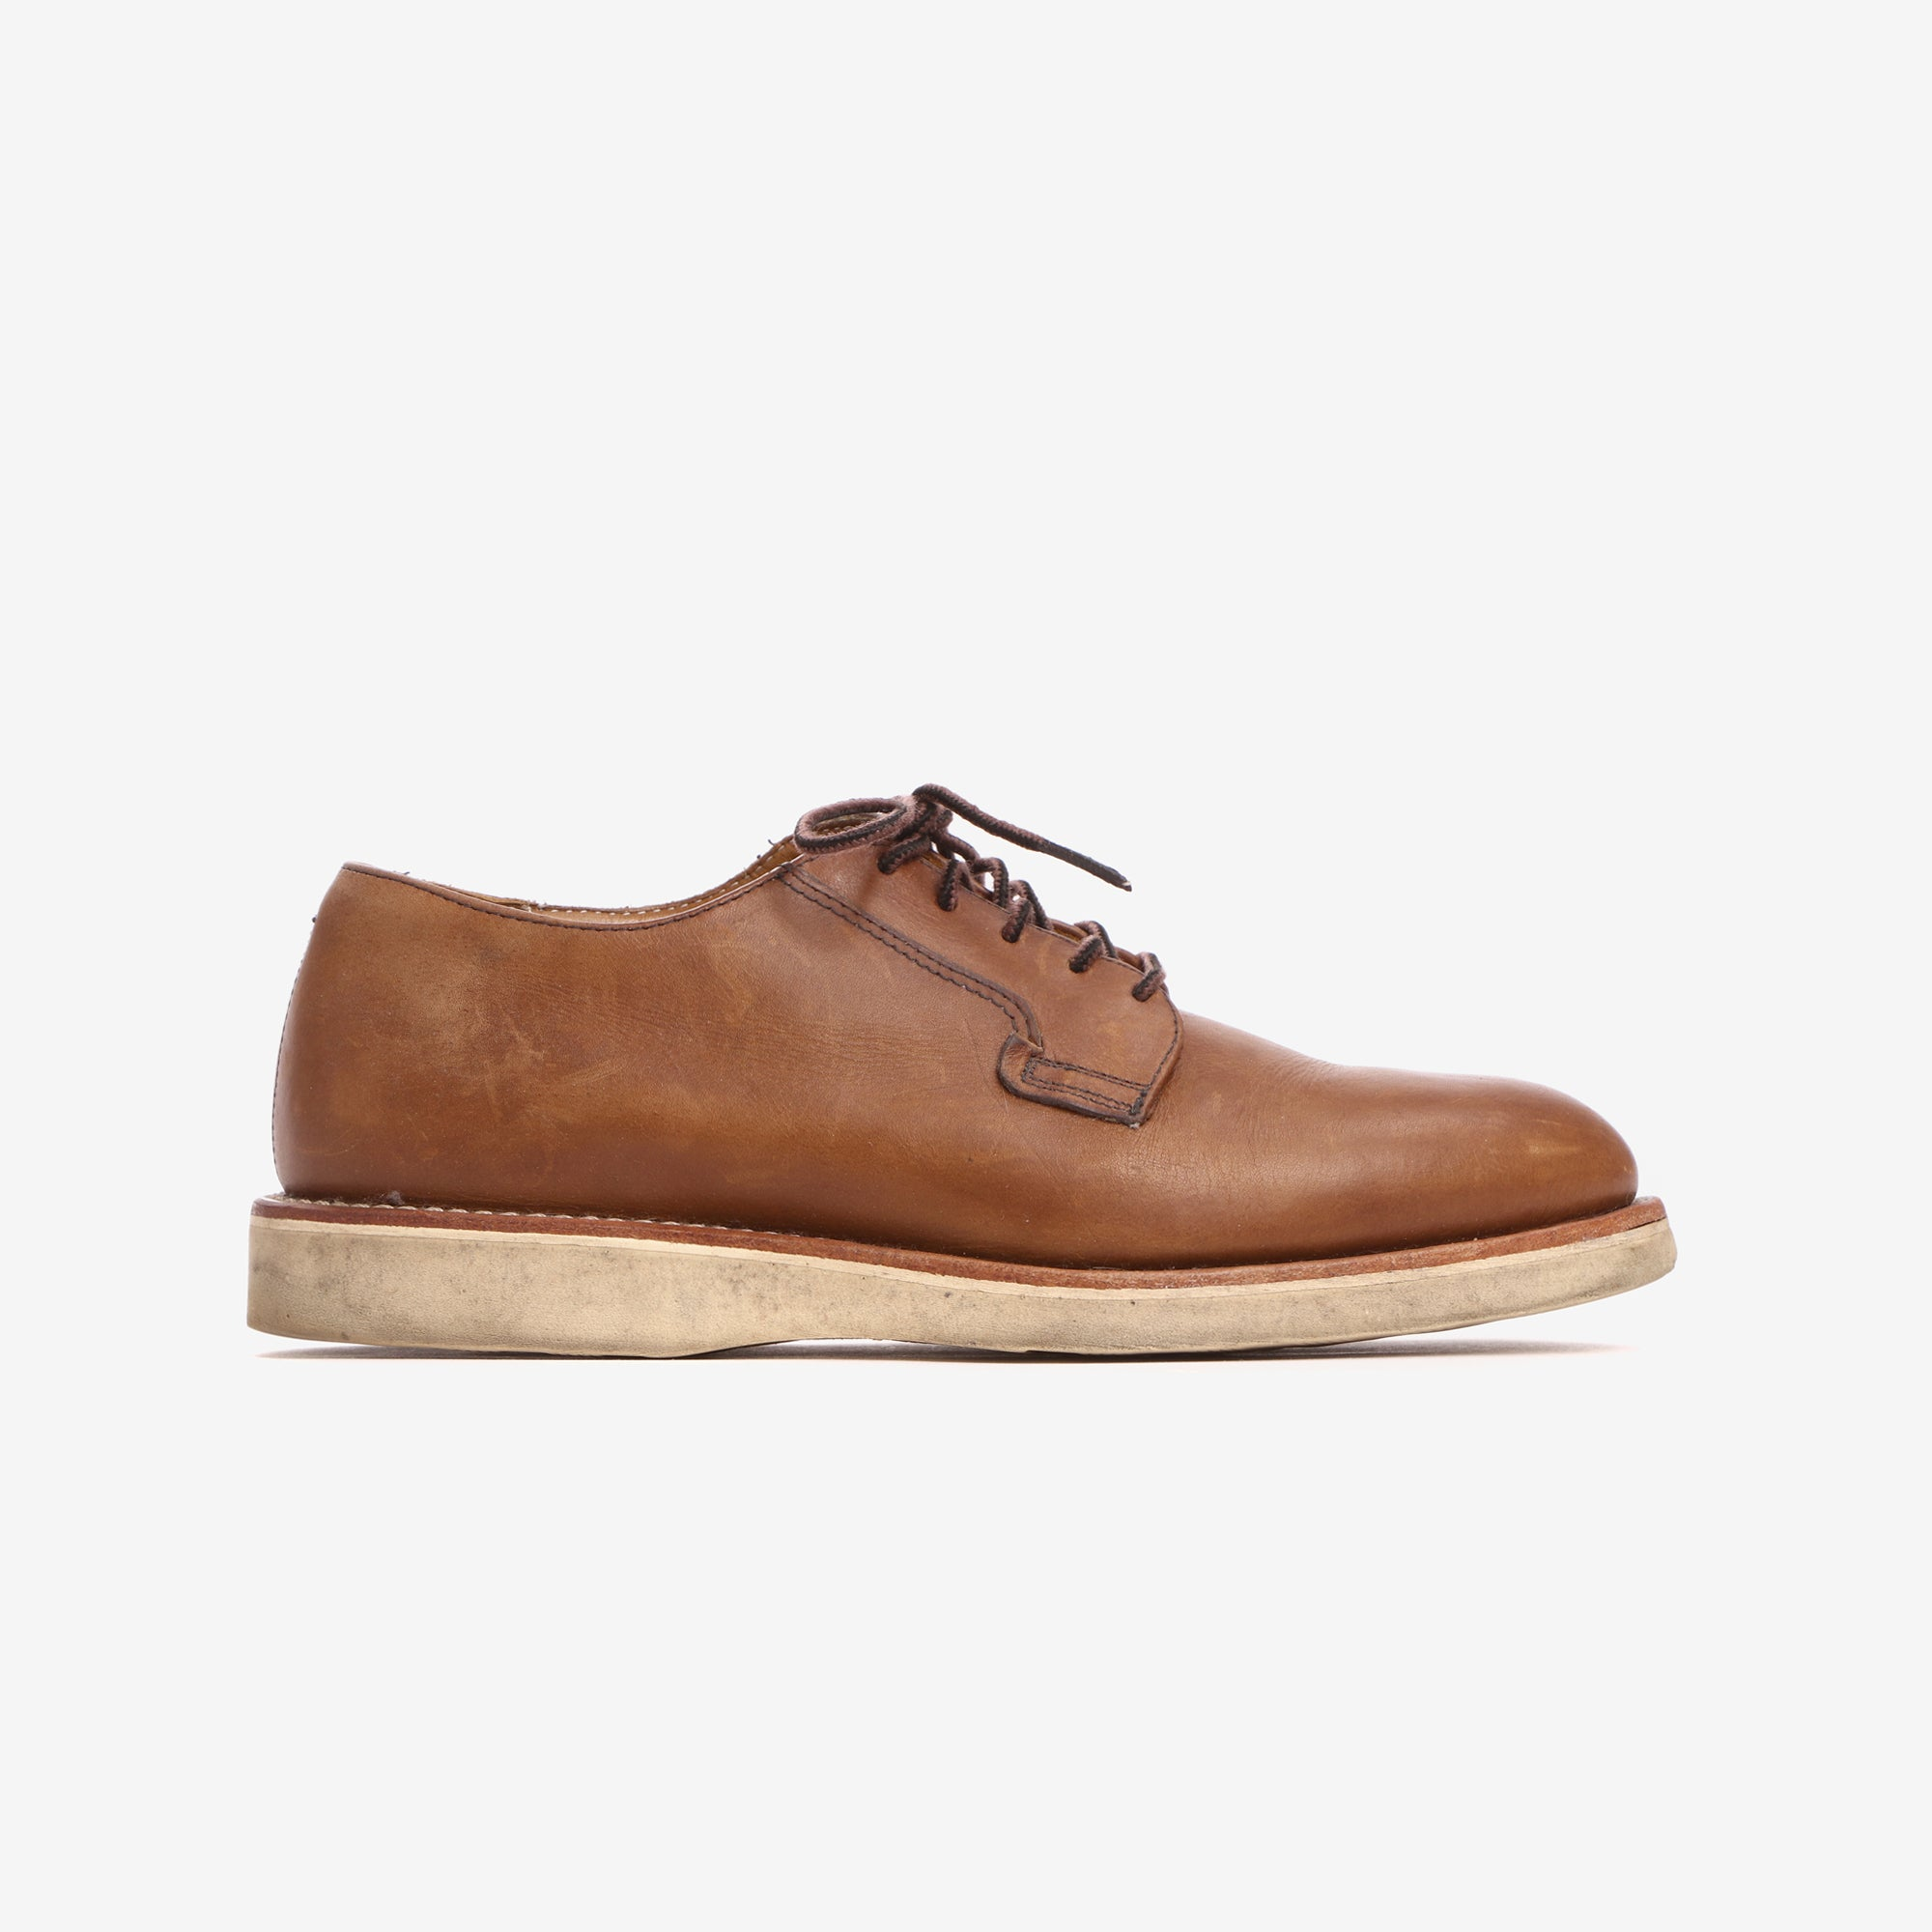 03101 Post Man Leather Derby Shoe